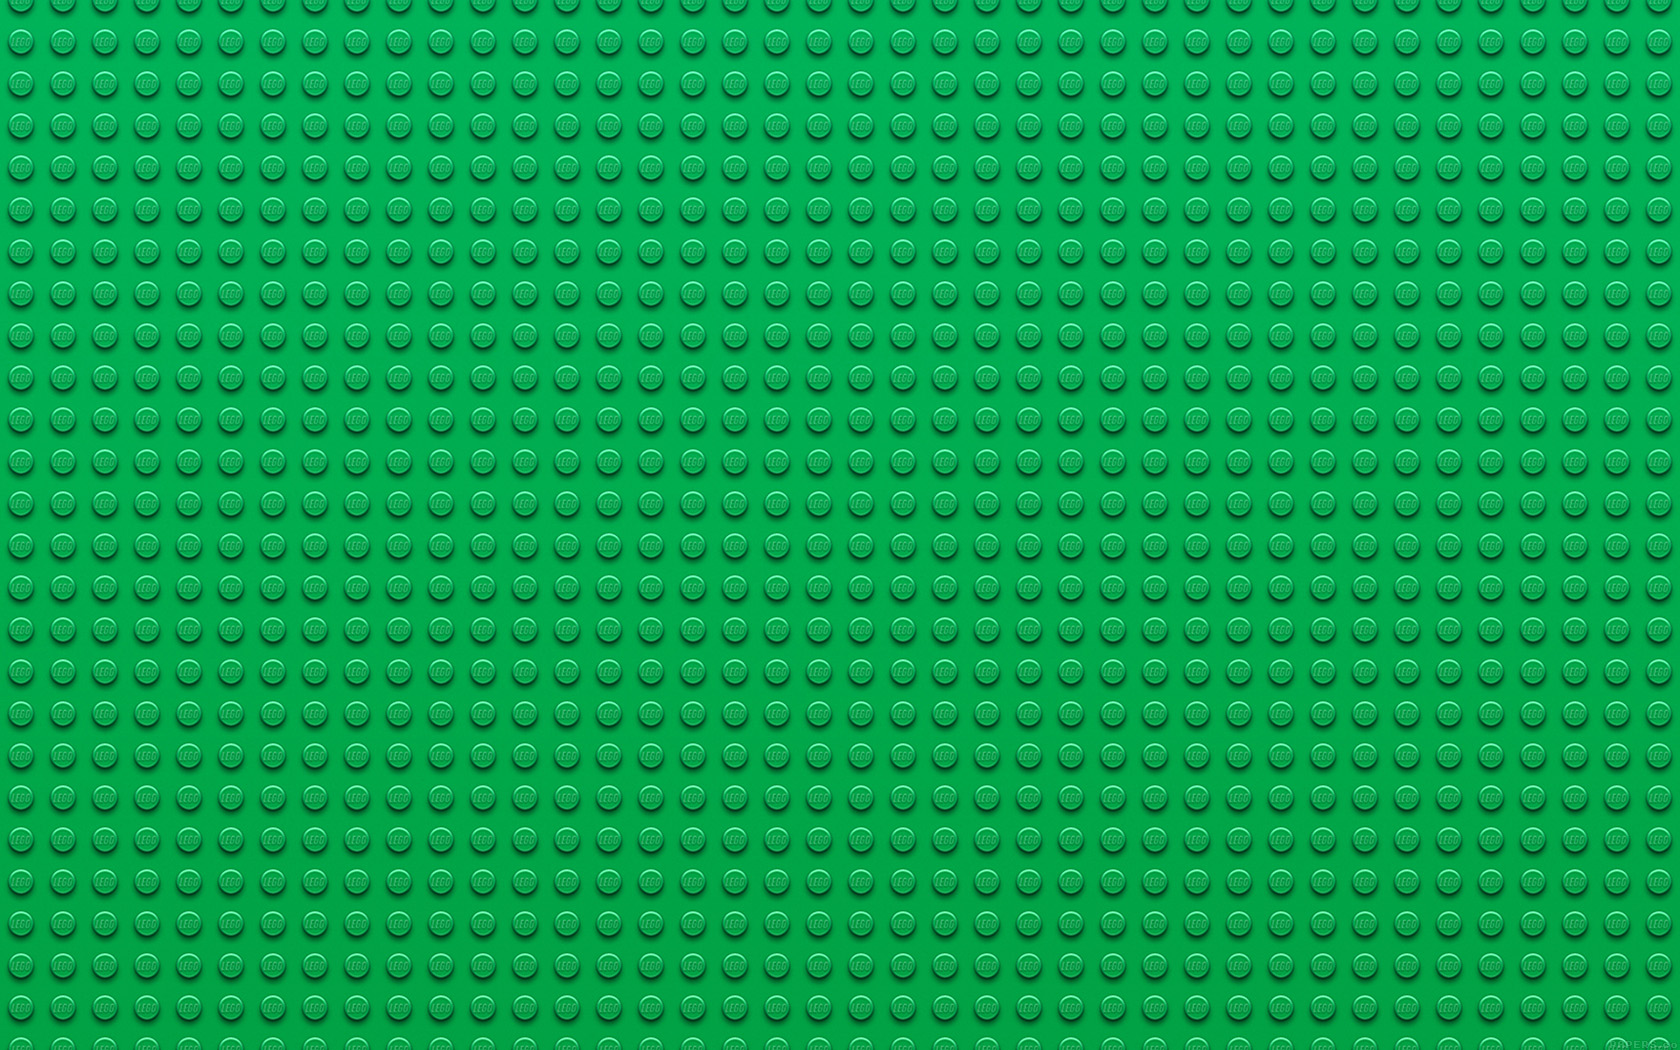 Ipad Wallpaper Fall Vf30 Lego Toy Green Block Pattern Papers Co